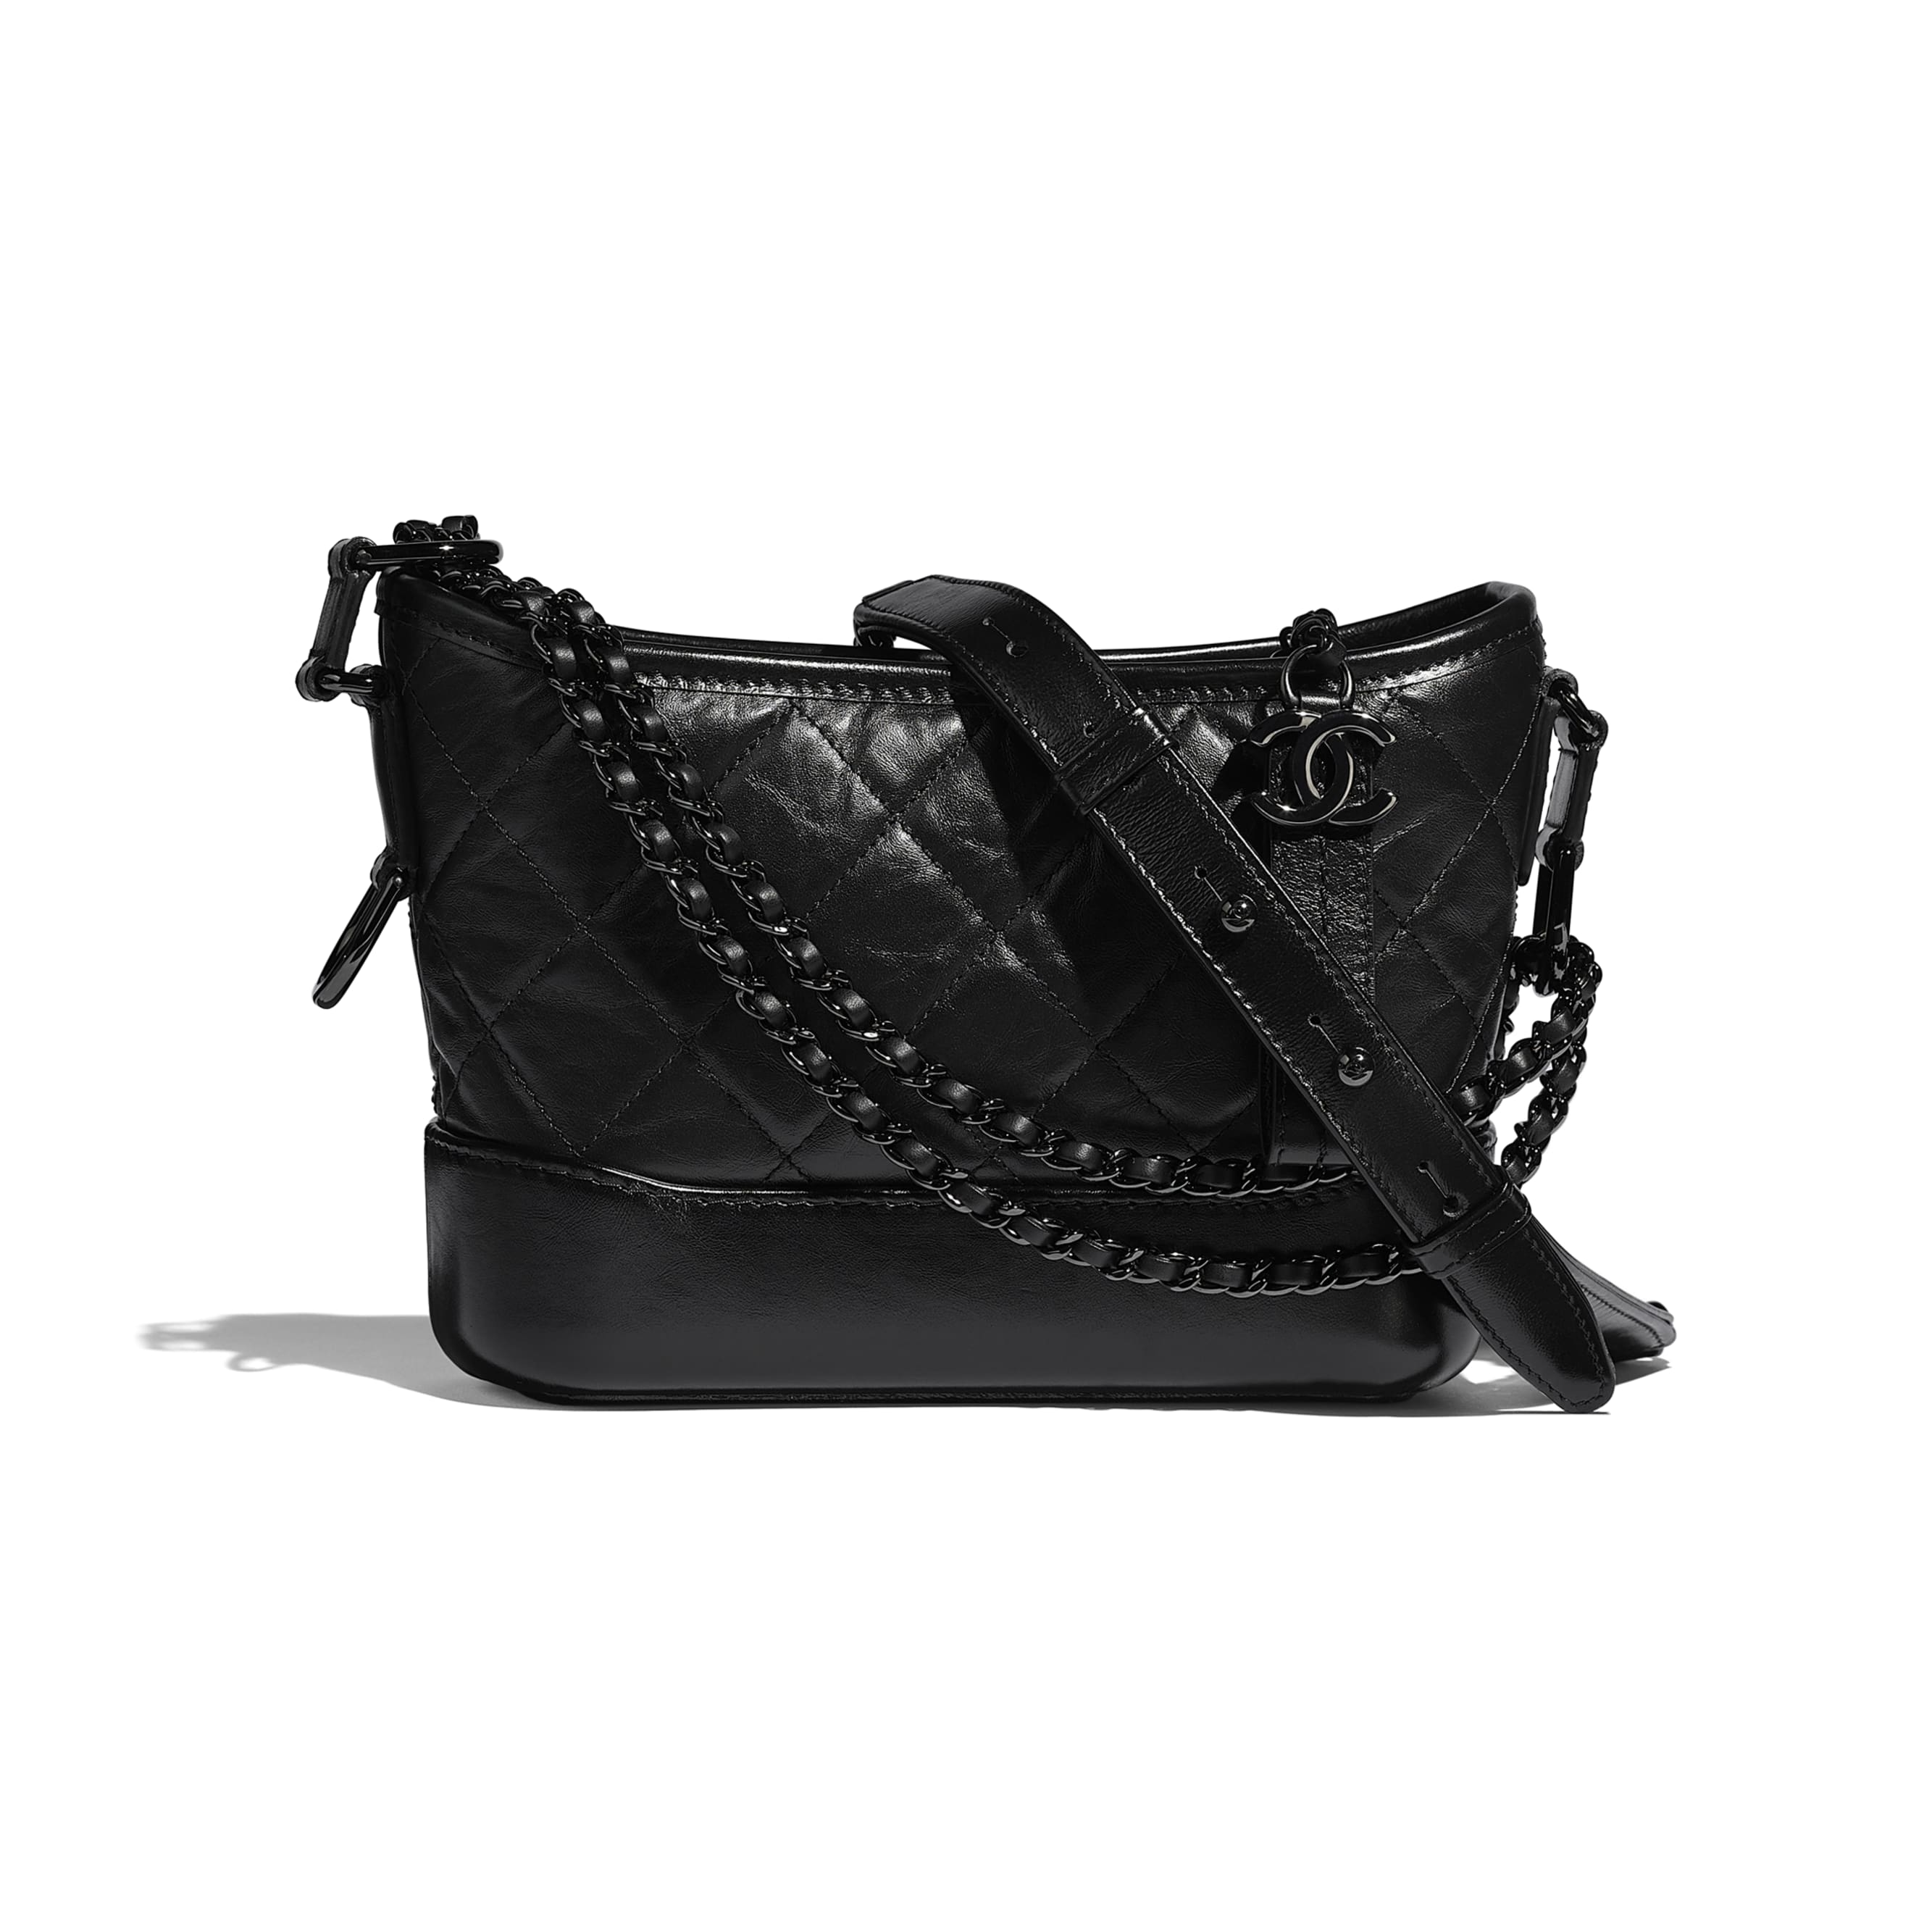 CHANEL'S GABRIELLE Small Hobo Bag - Black - Aged Calfskin, Smooth Calfskin & Black Metal - Default view - see standard sized version